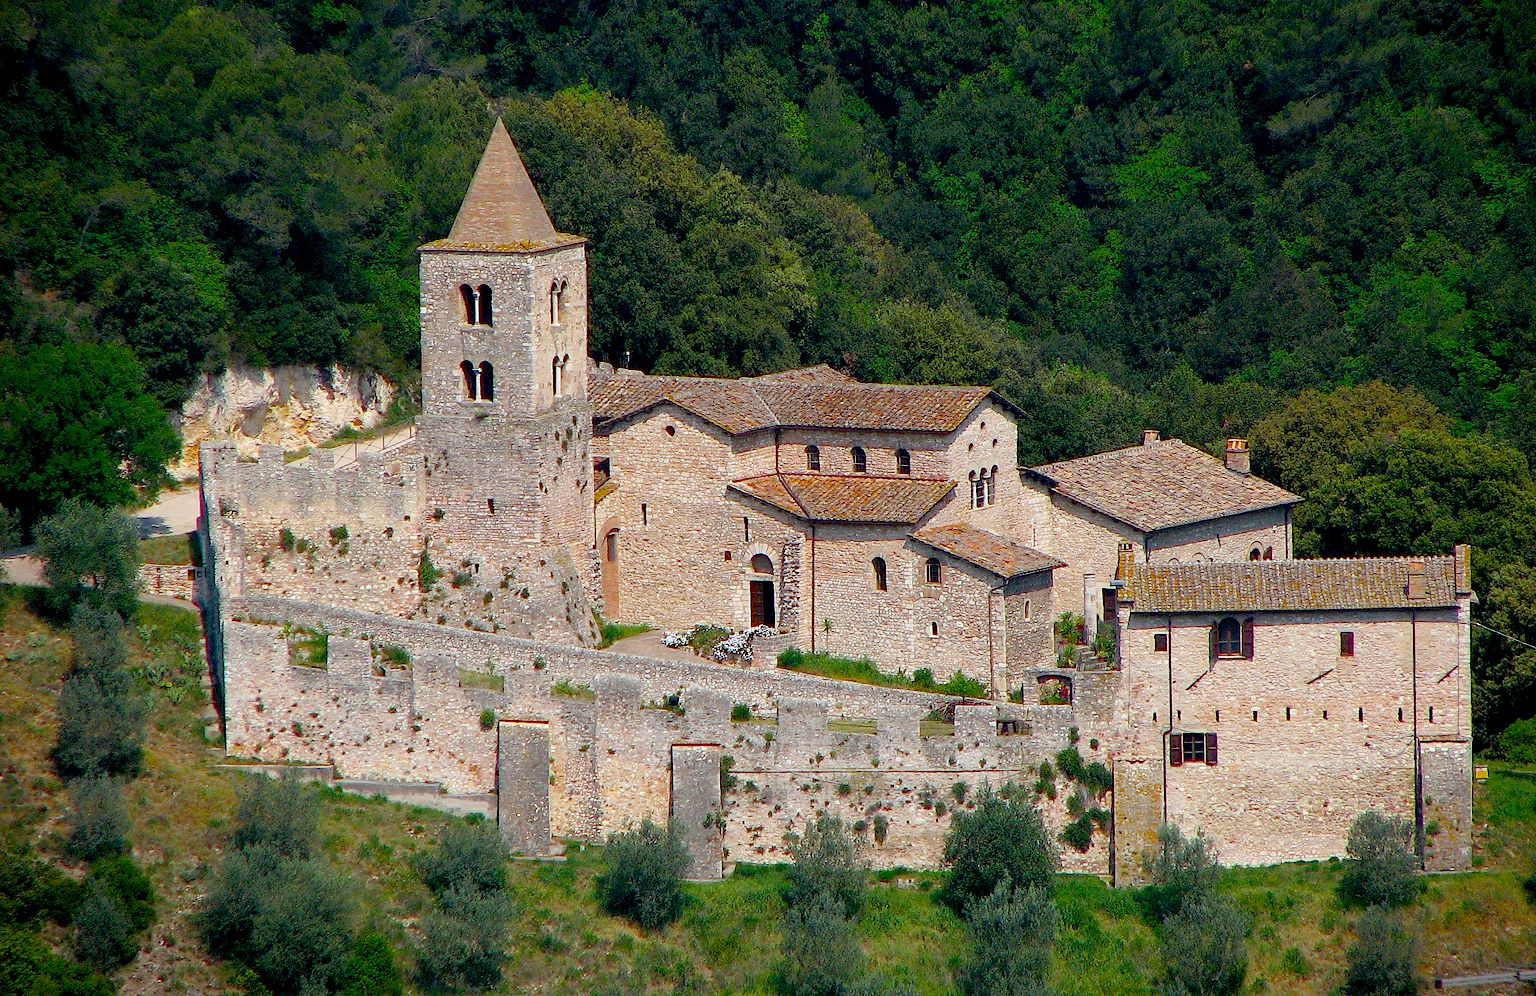 Abbey of St. Cassiano in Umbria